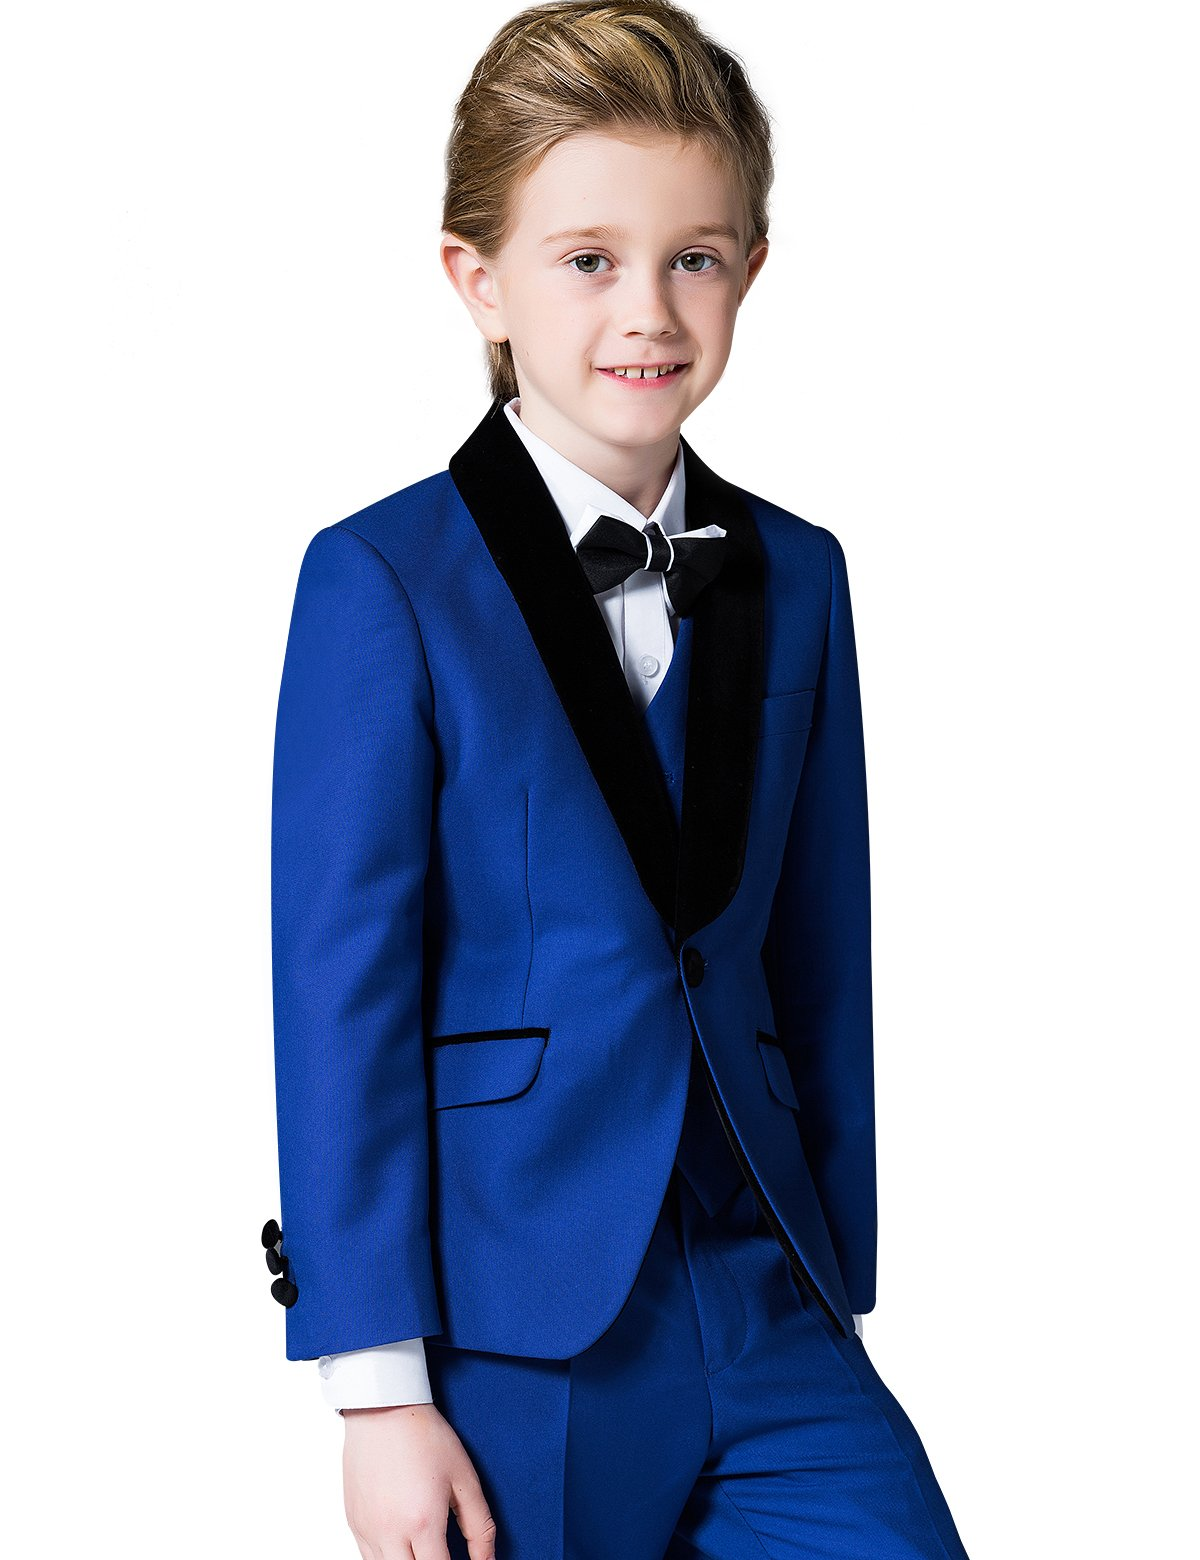 ELPA ELPA Boys Suit 6 Piece Slim Fit Formal Dresswear Set